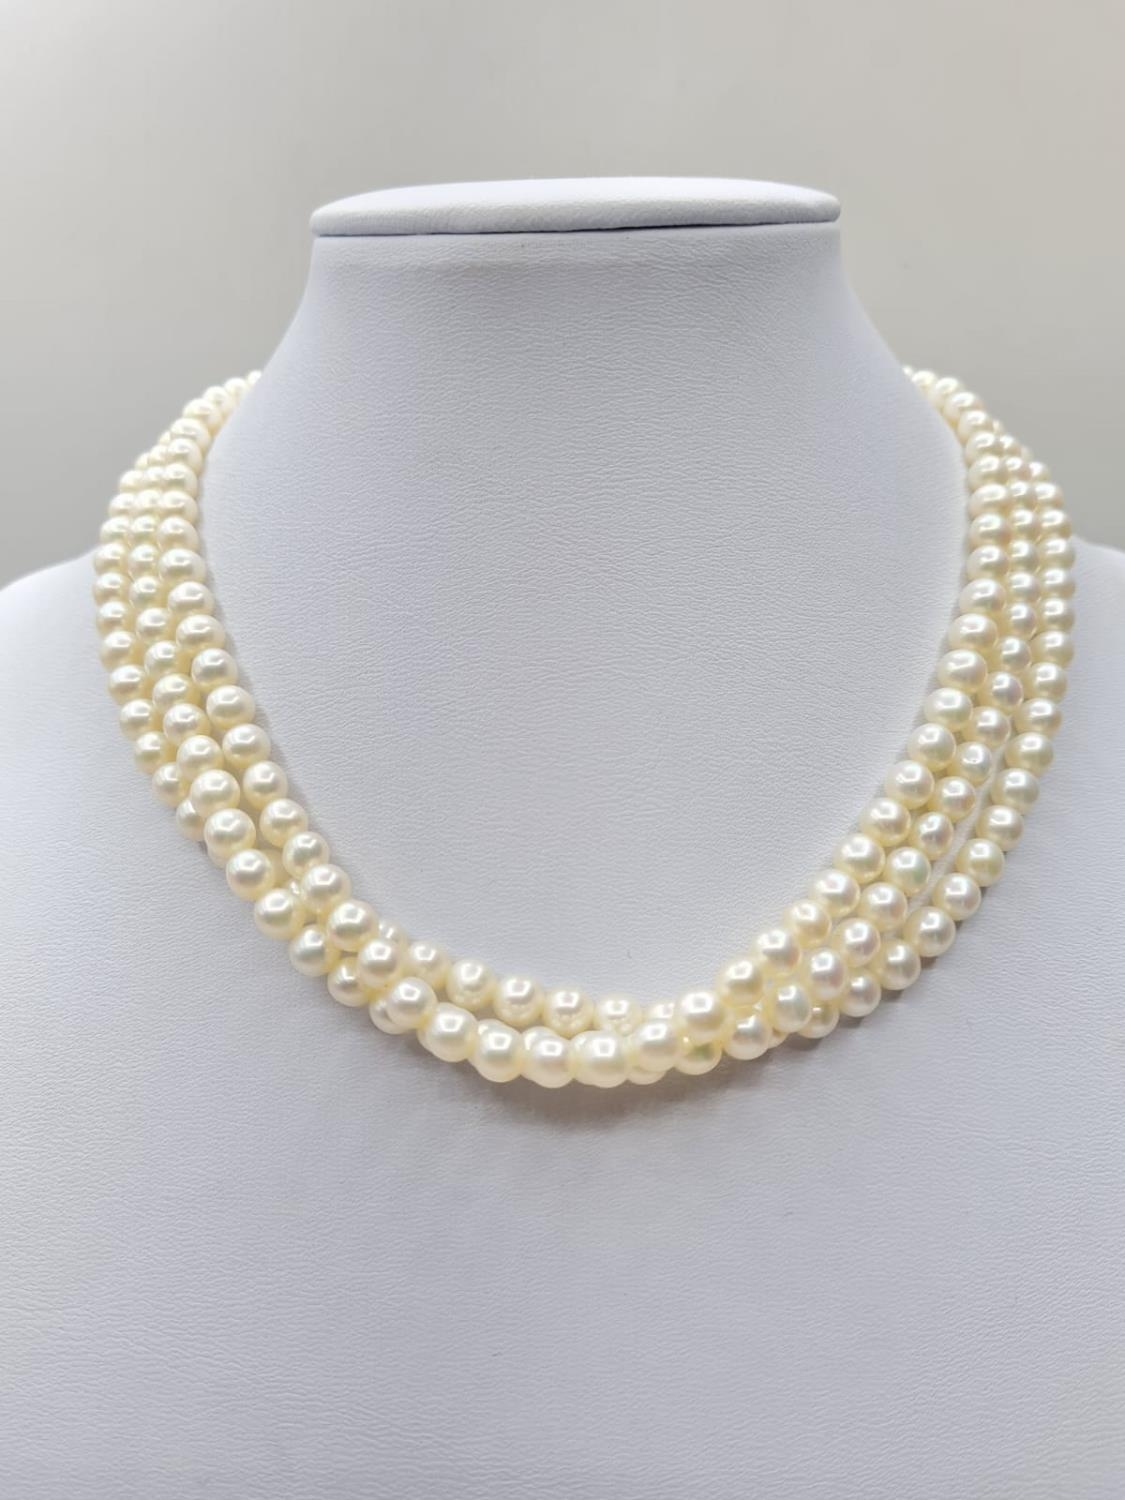 3 rows of cultured pearls choker necklace set in 9ct gold clasp, weight 45g and 33cm long approx - Image 2 of 4